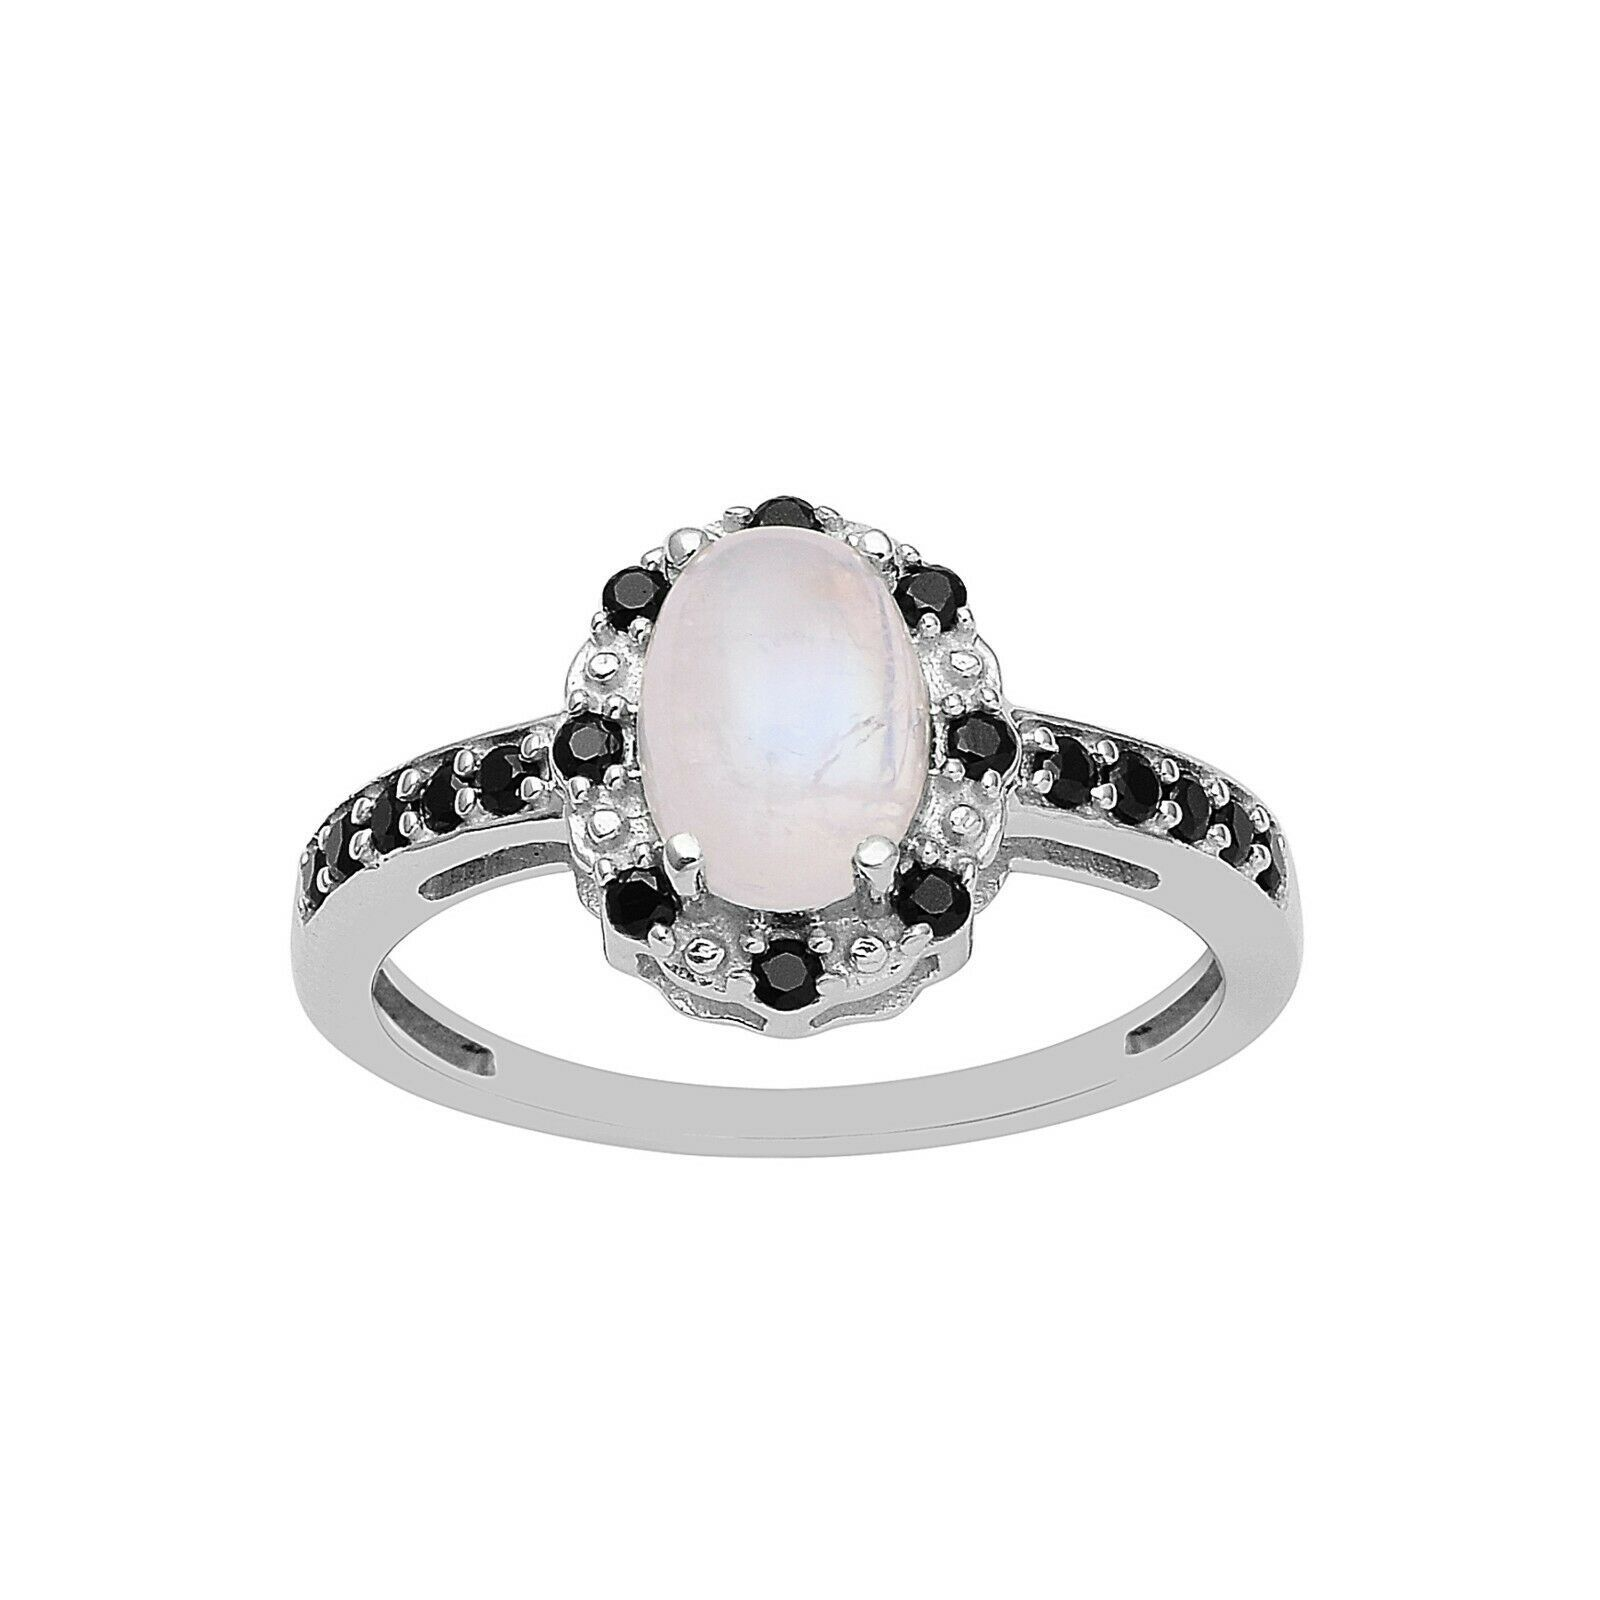 0.75 Ct Rainbow Moonstone Black Spinel Halo Cluster Ring 925 Sterling Silver